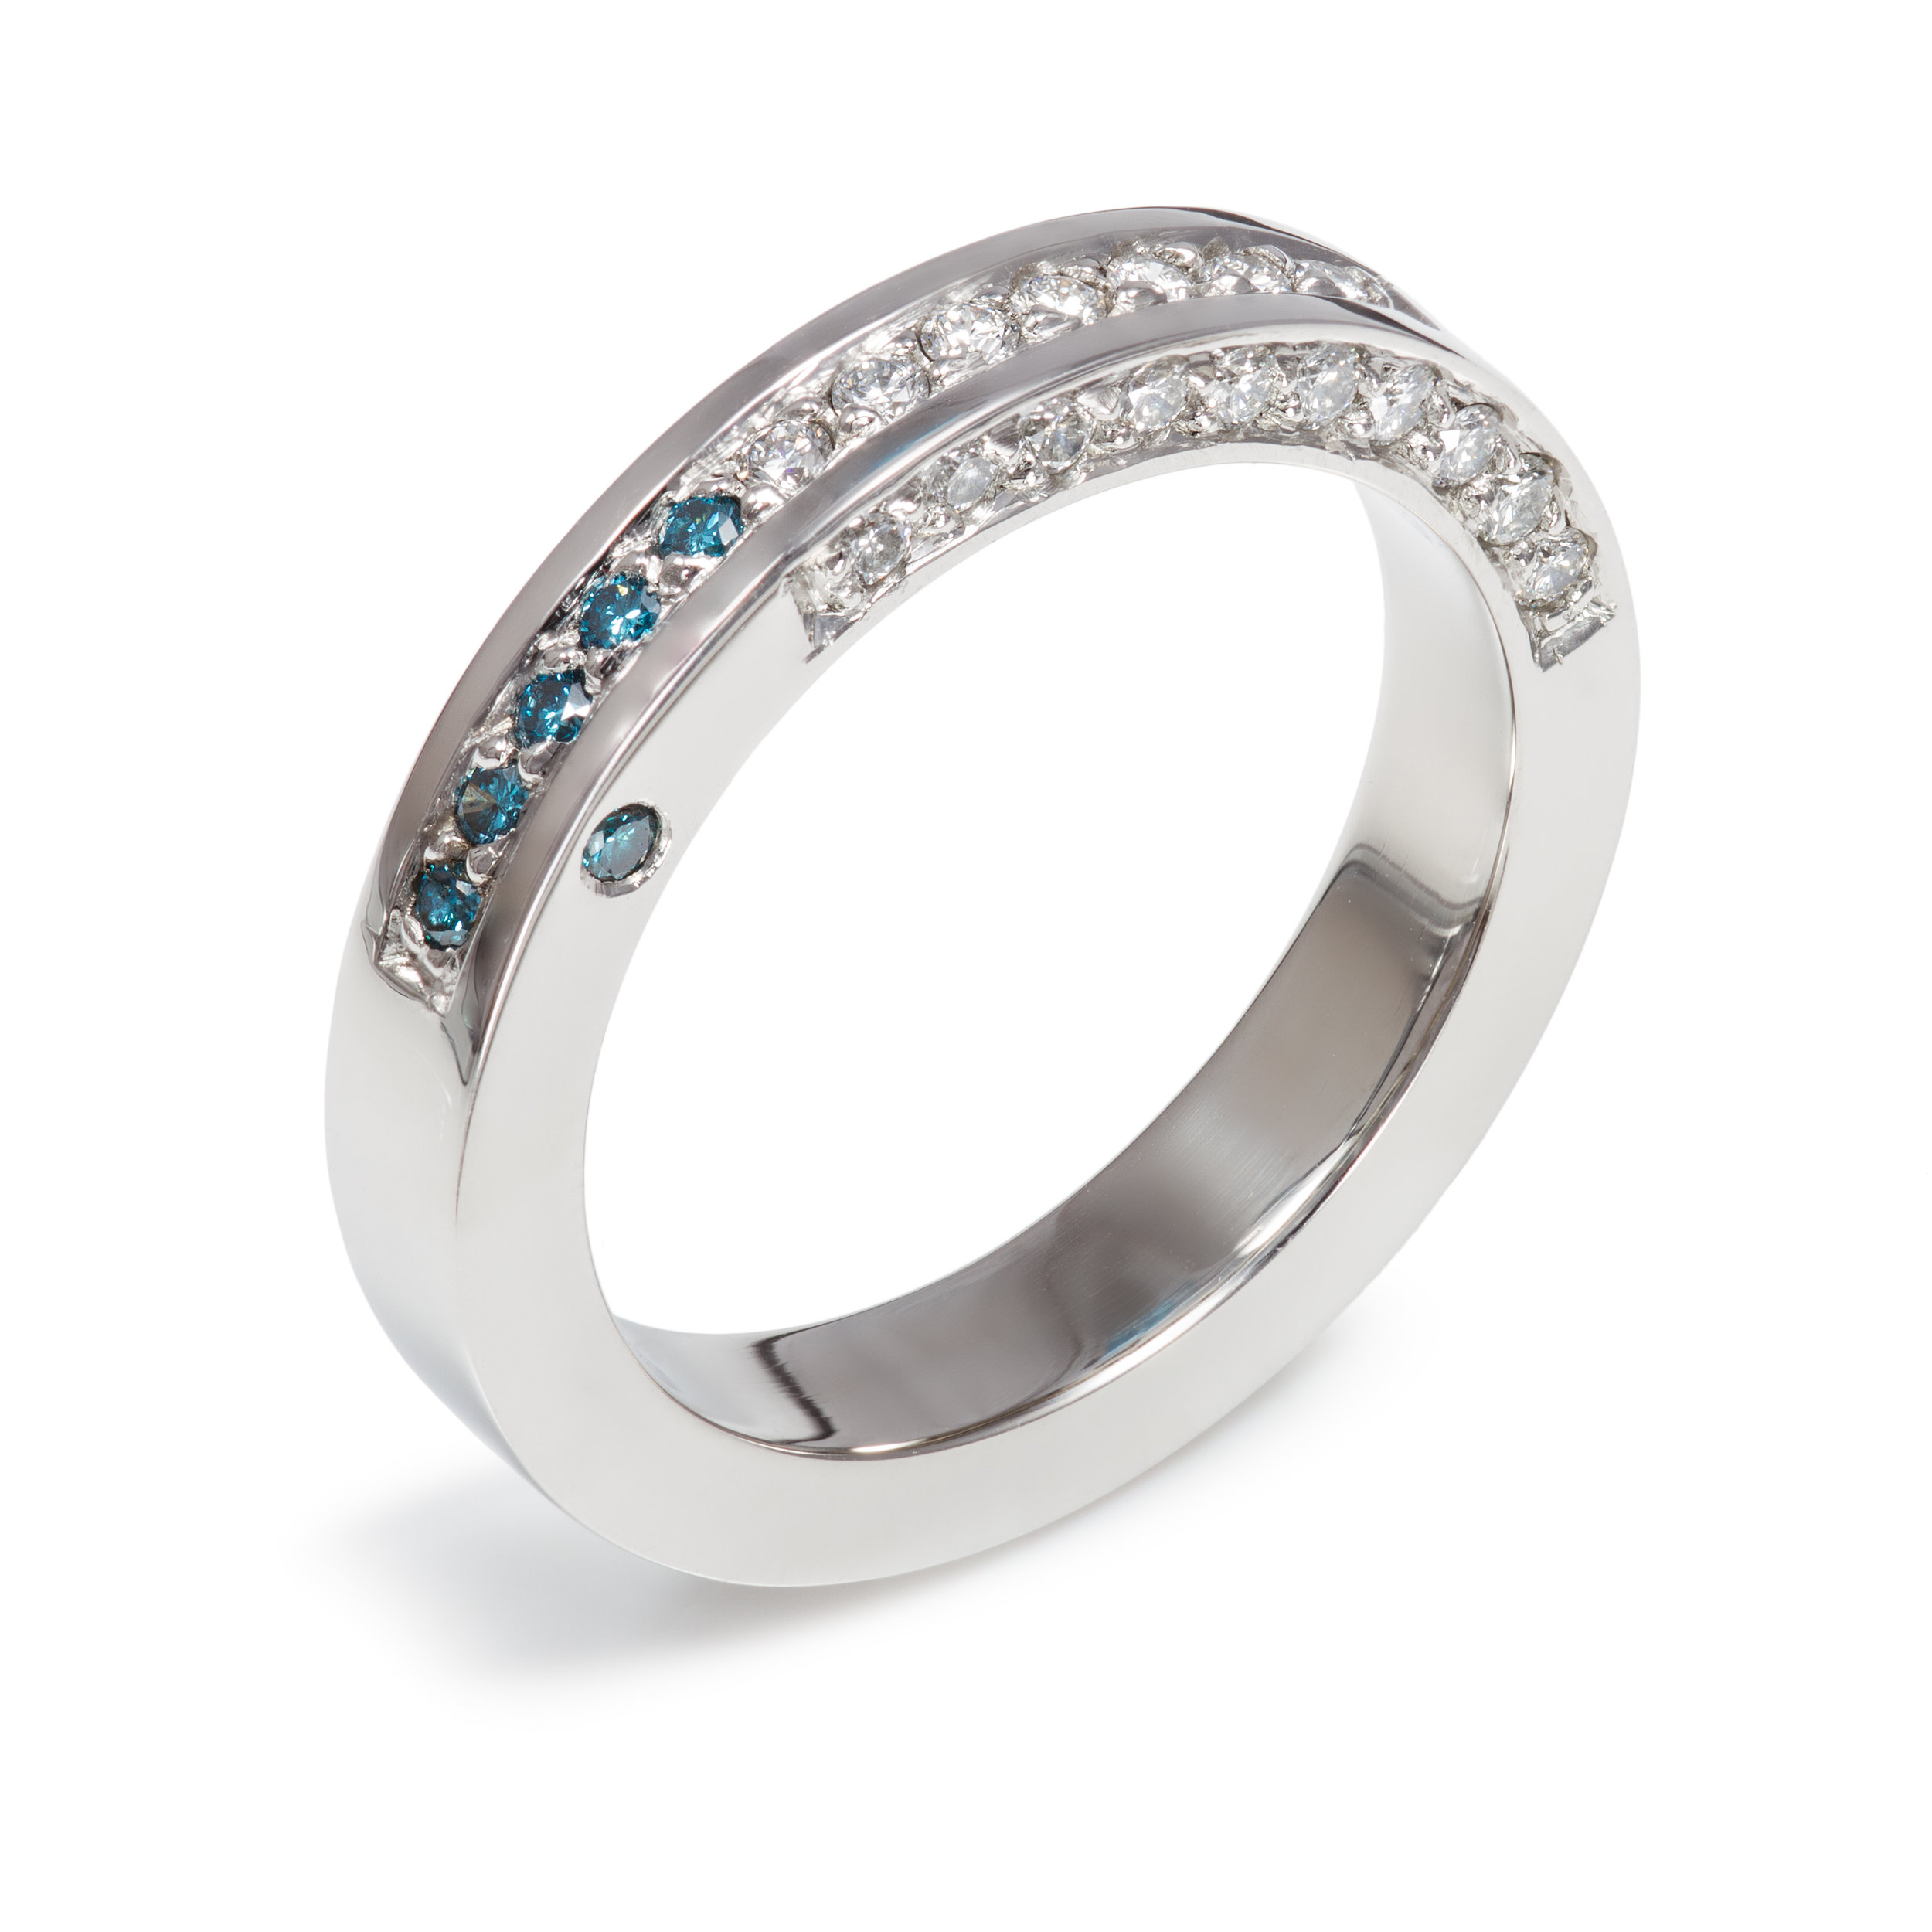 Platinum ring set with seventeen round brilliant cut diamonds and a further six treated blue diamonds - £3,325